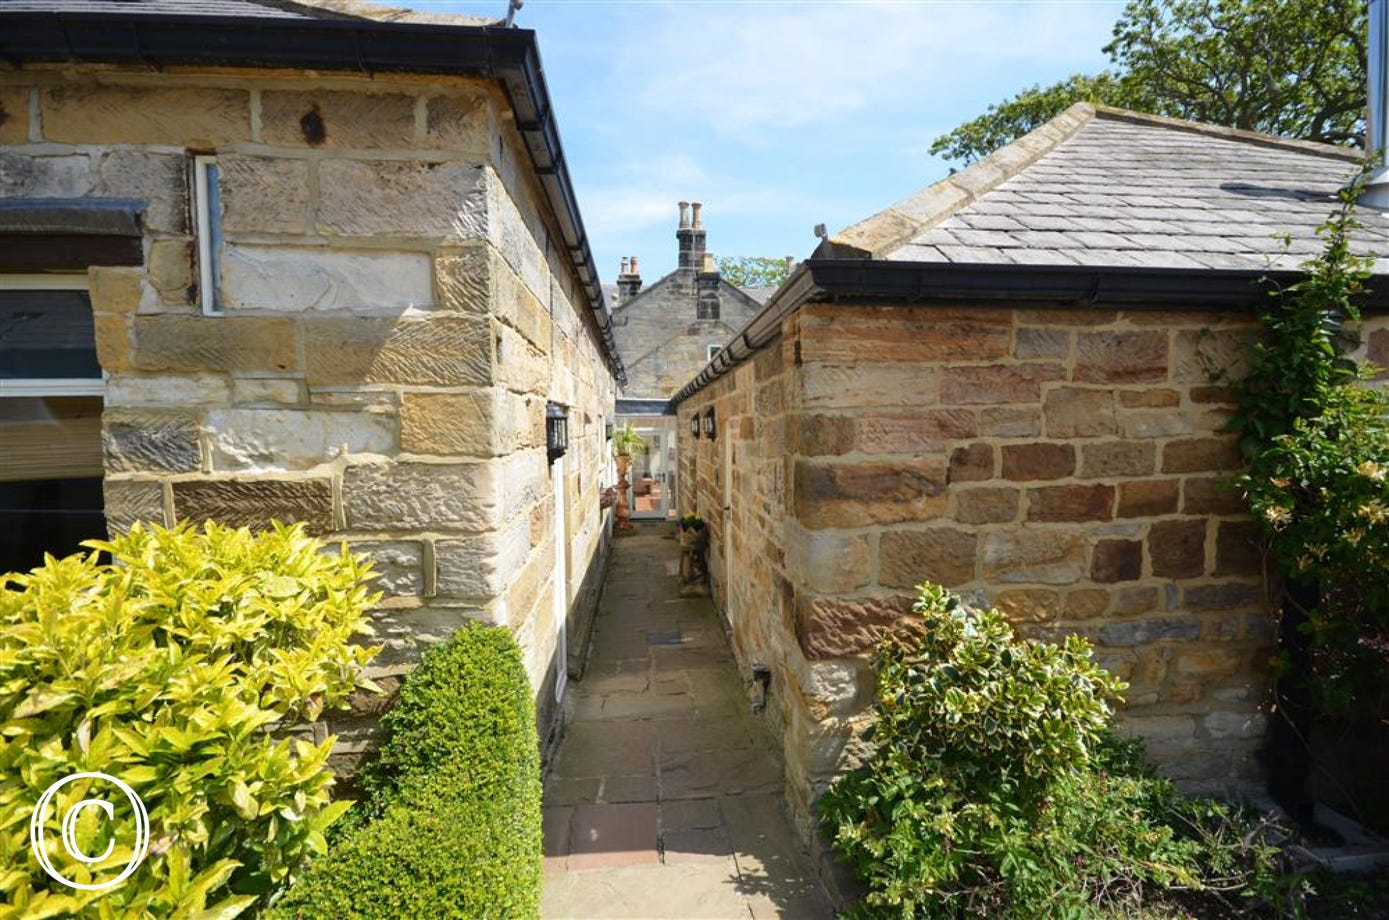 Alley leading up to other cottages and to the Snooker Room at the end.